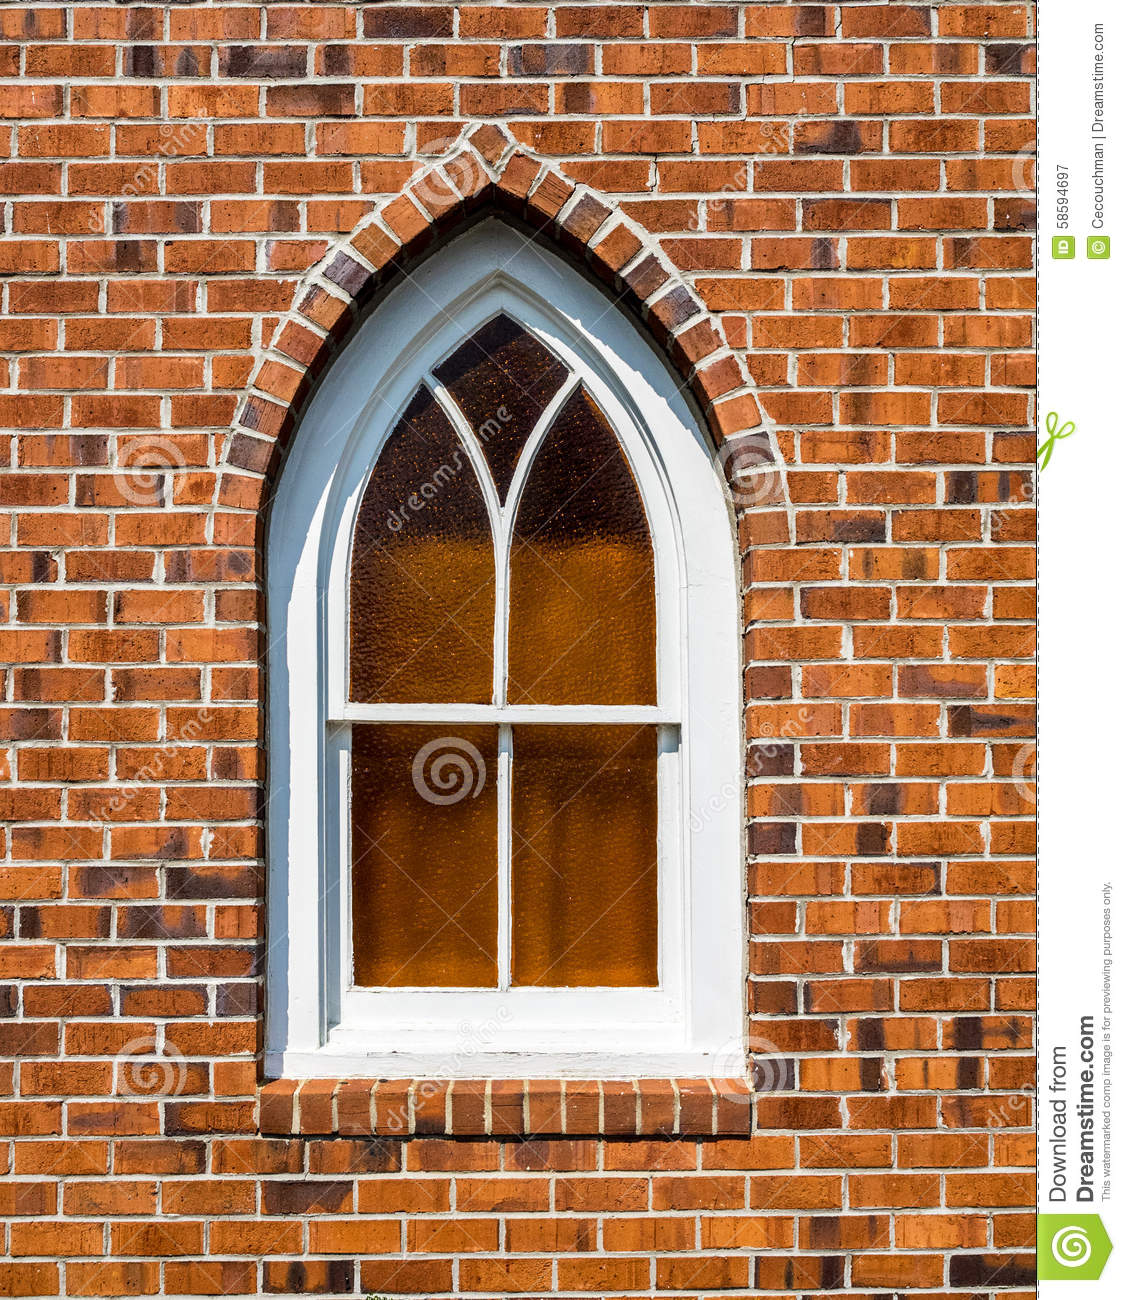 Small Gothic Window In Red Brick Wall Stock Image